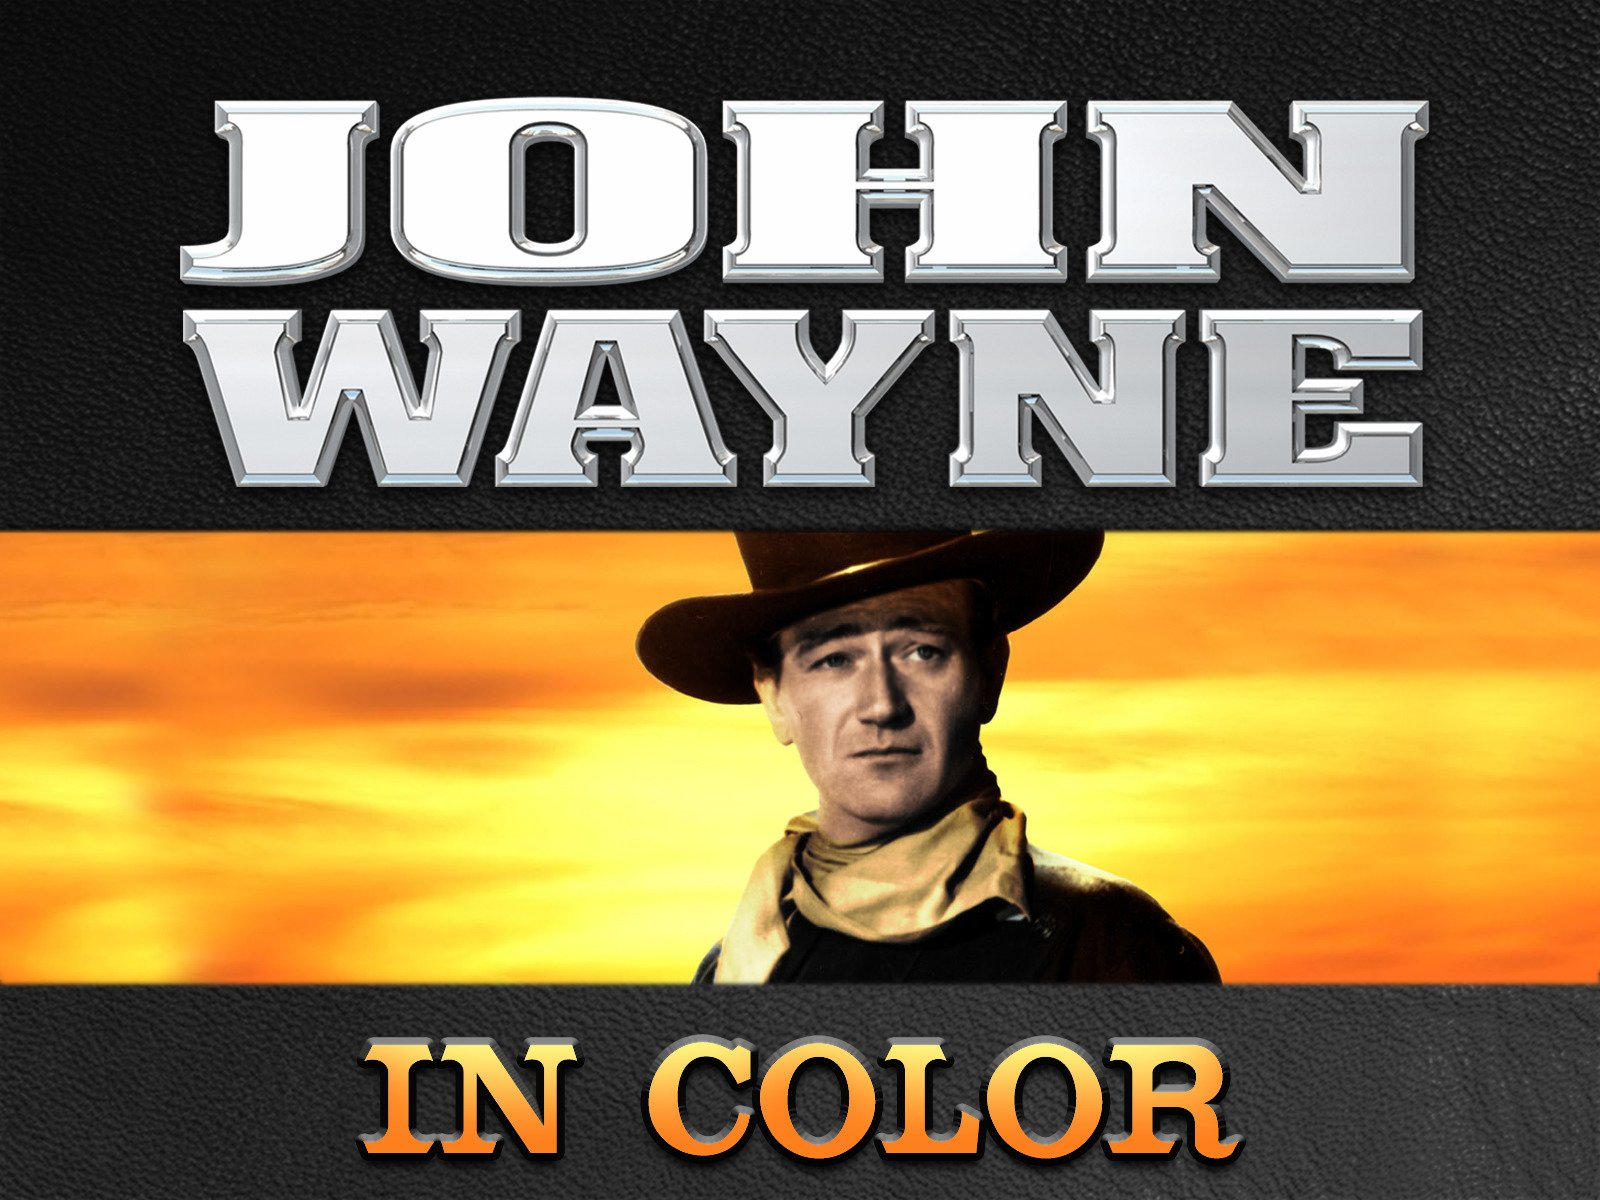 John Wayne in Color